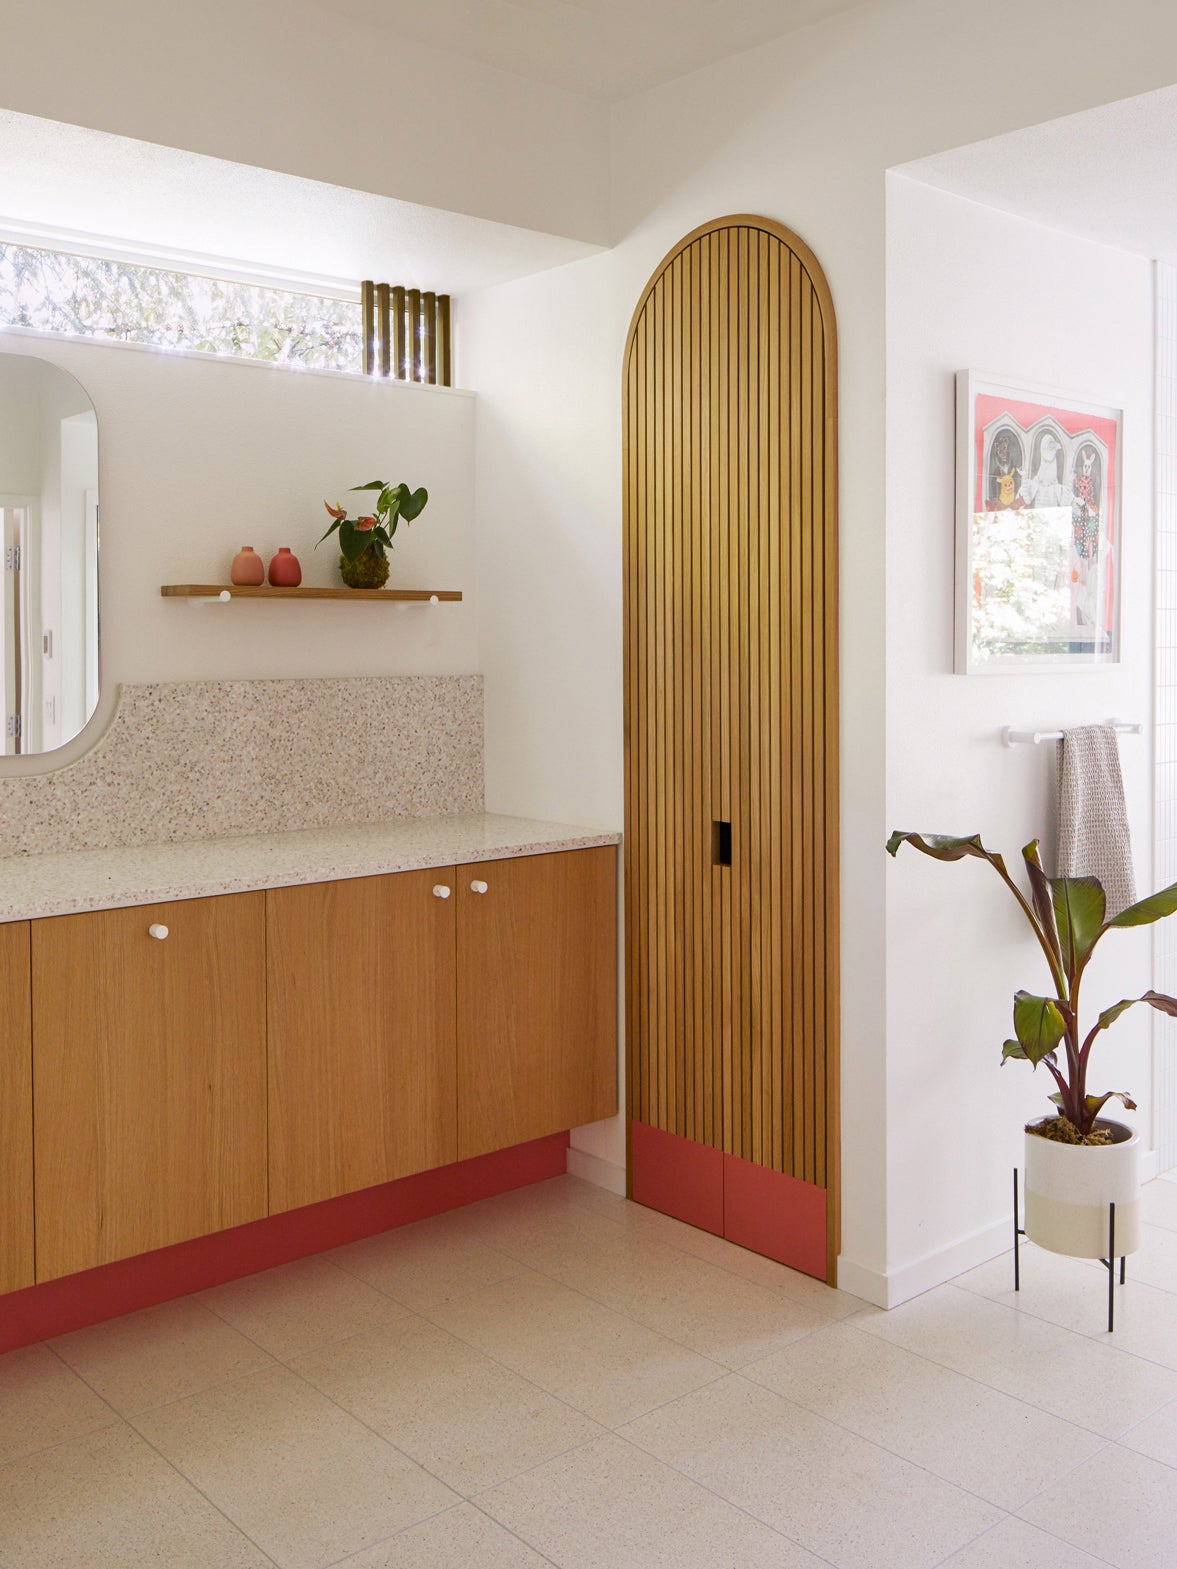 wood slatted door next to wood cabinets with red accents